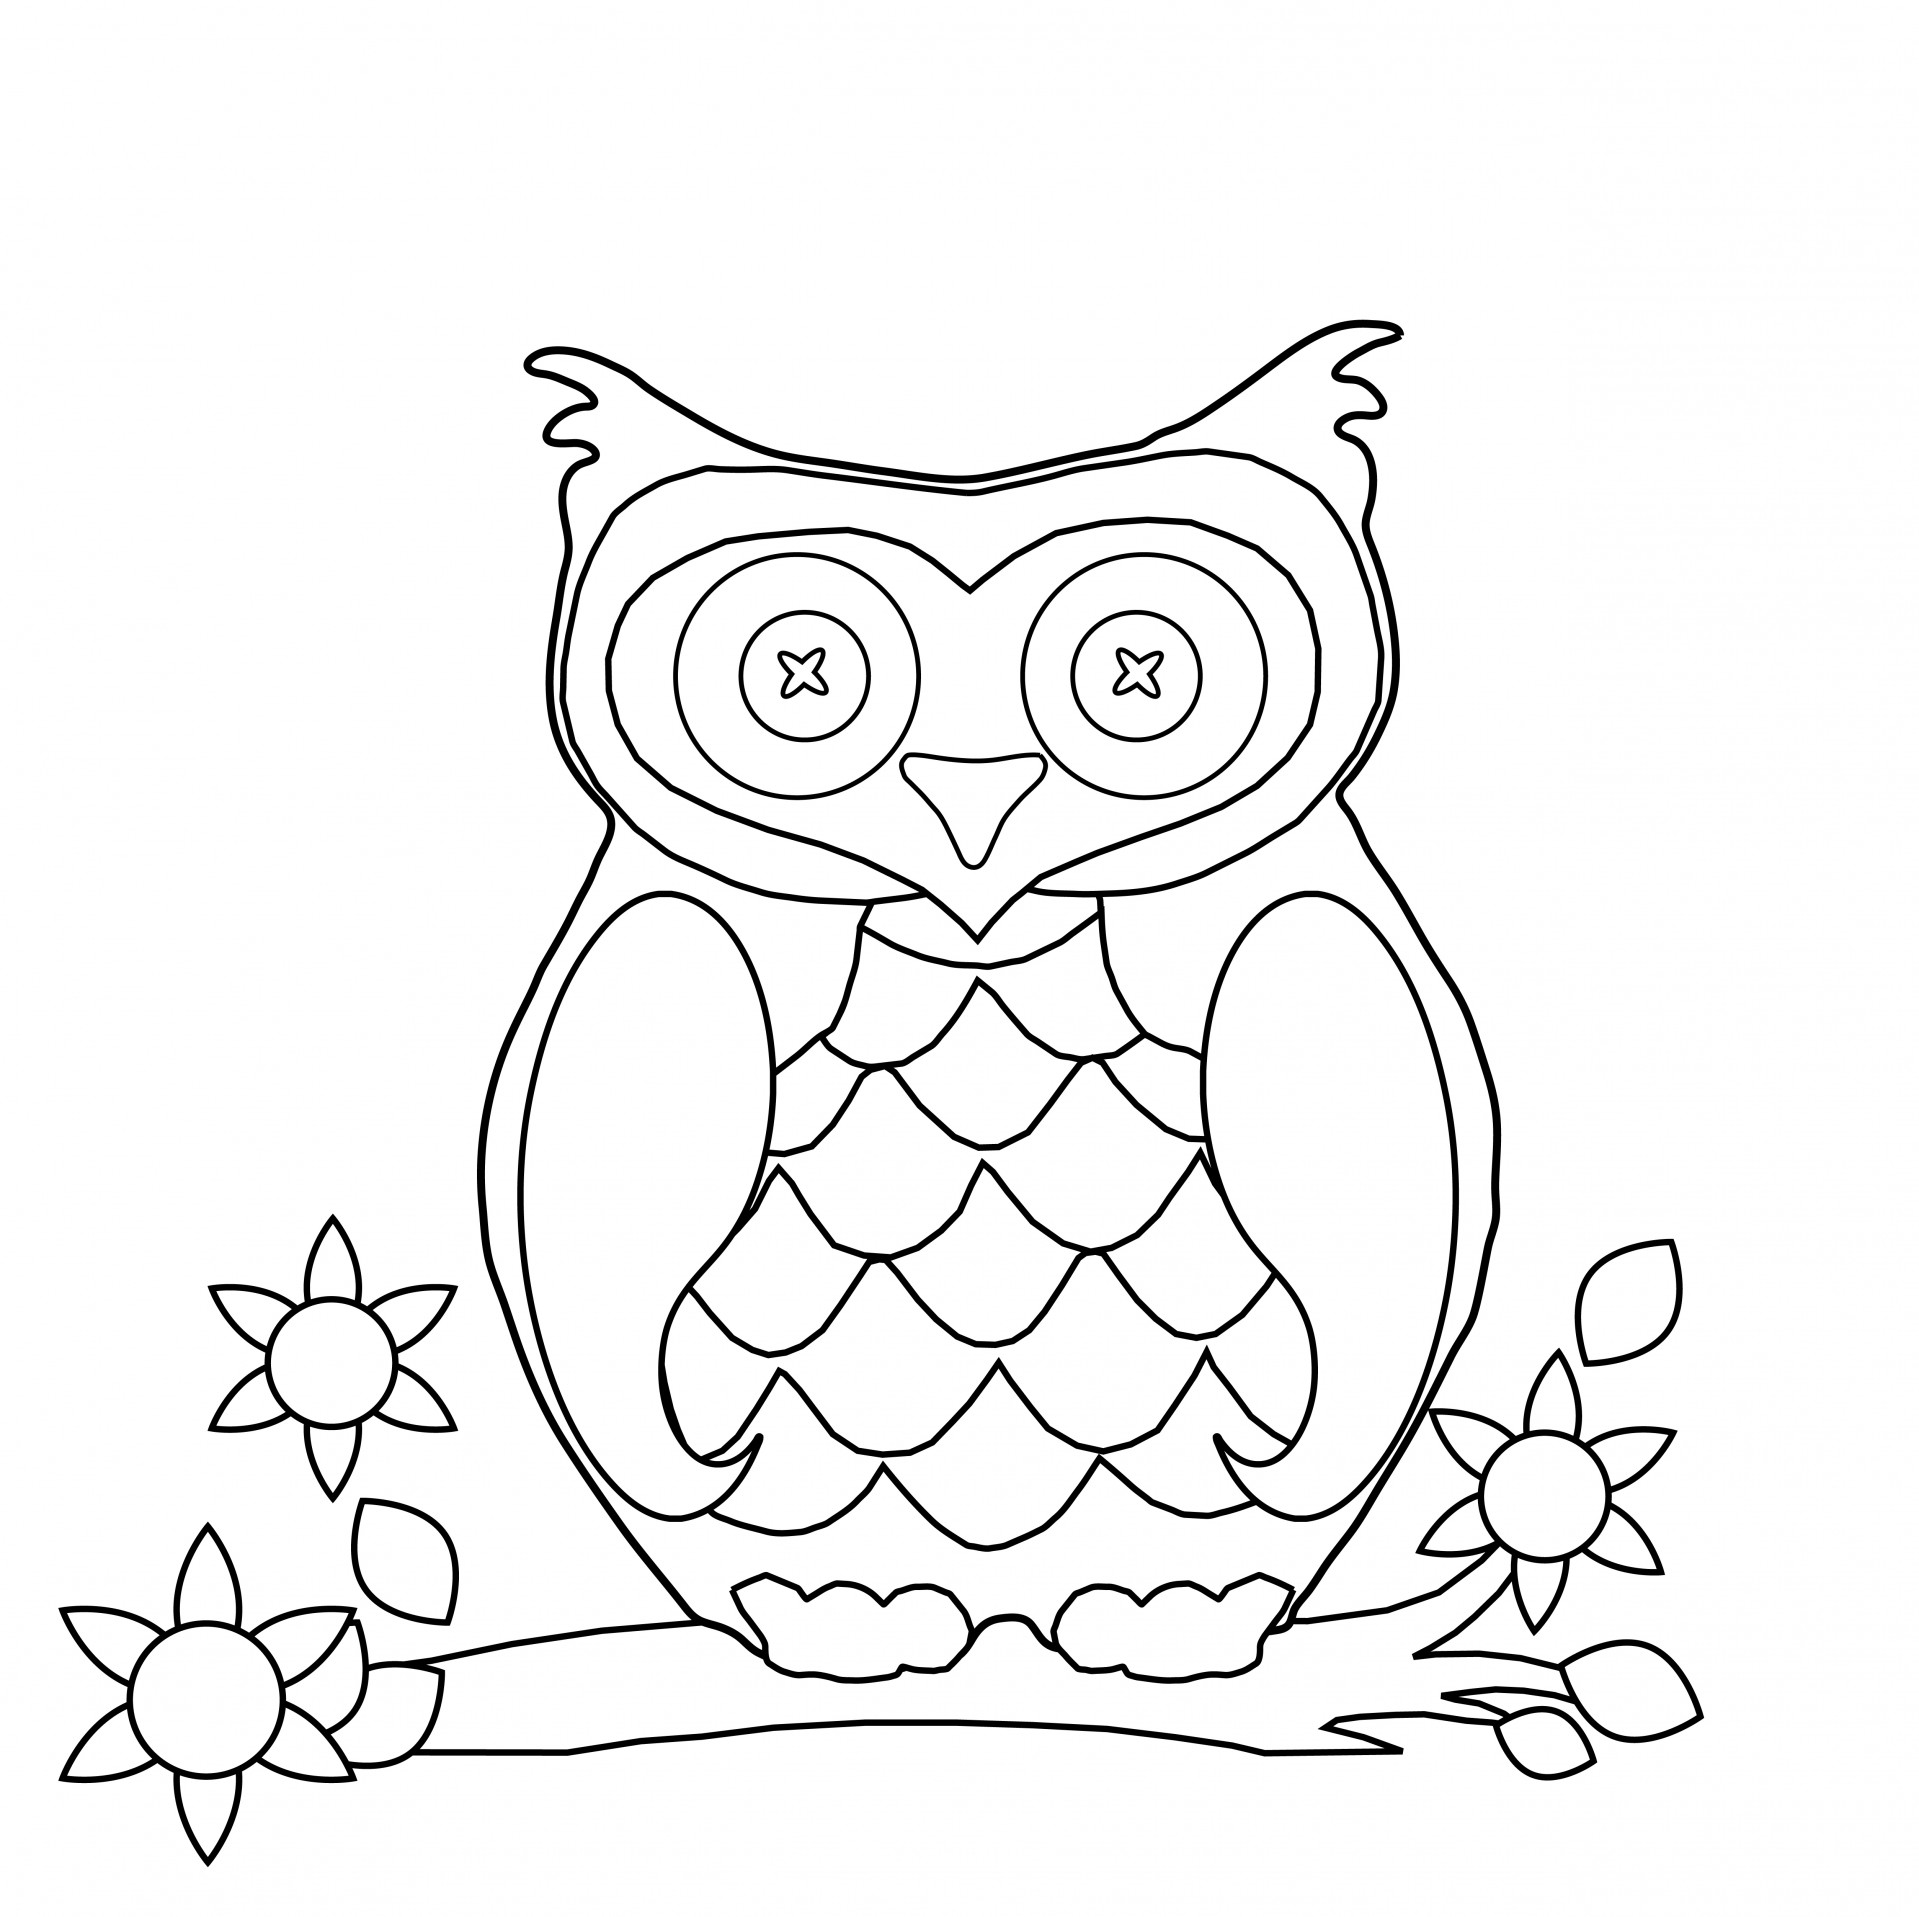 printable pages to color free easy to print owl coloring pages tulamama color pages printable to